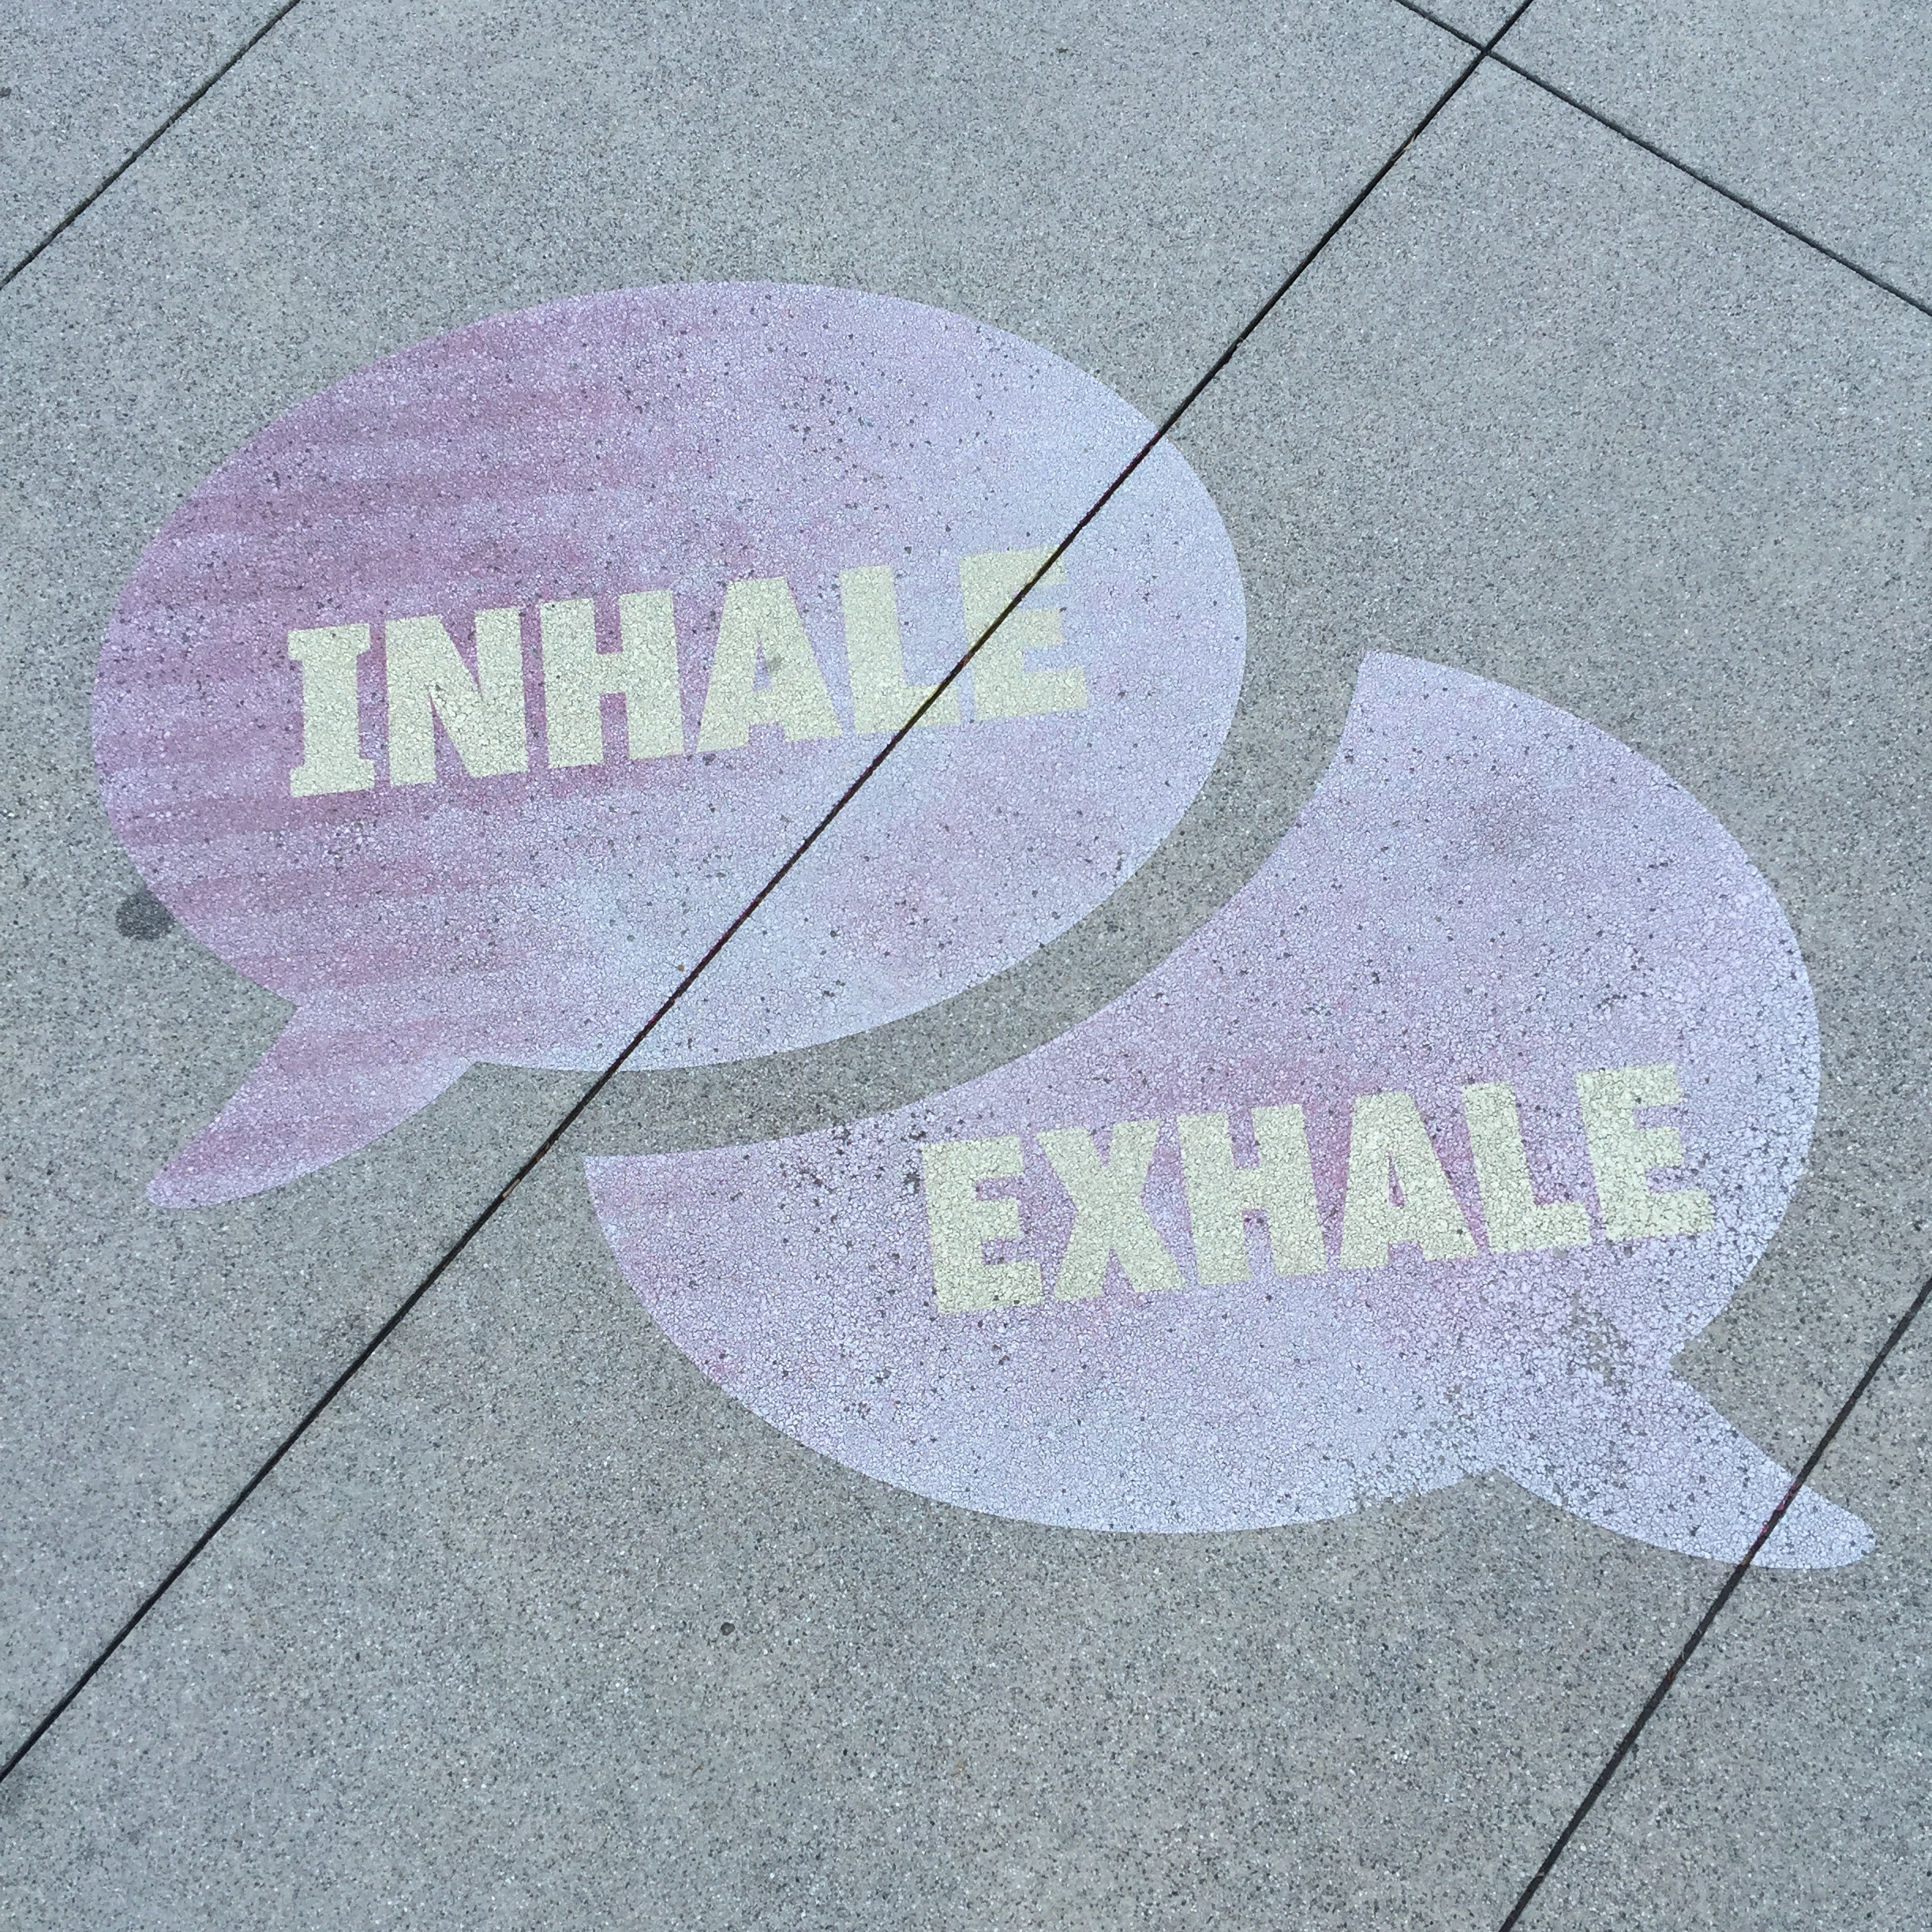 Inhale and exhale signs.